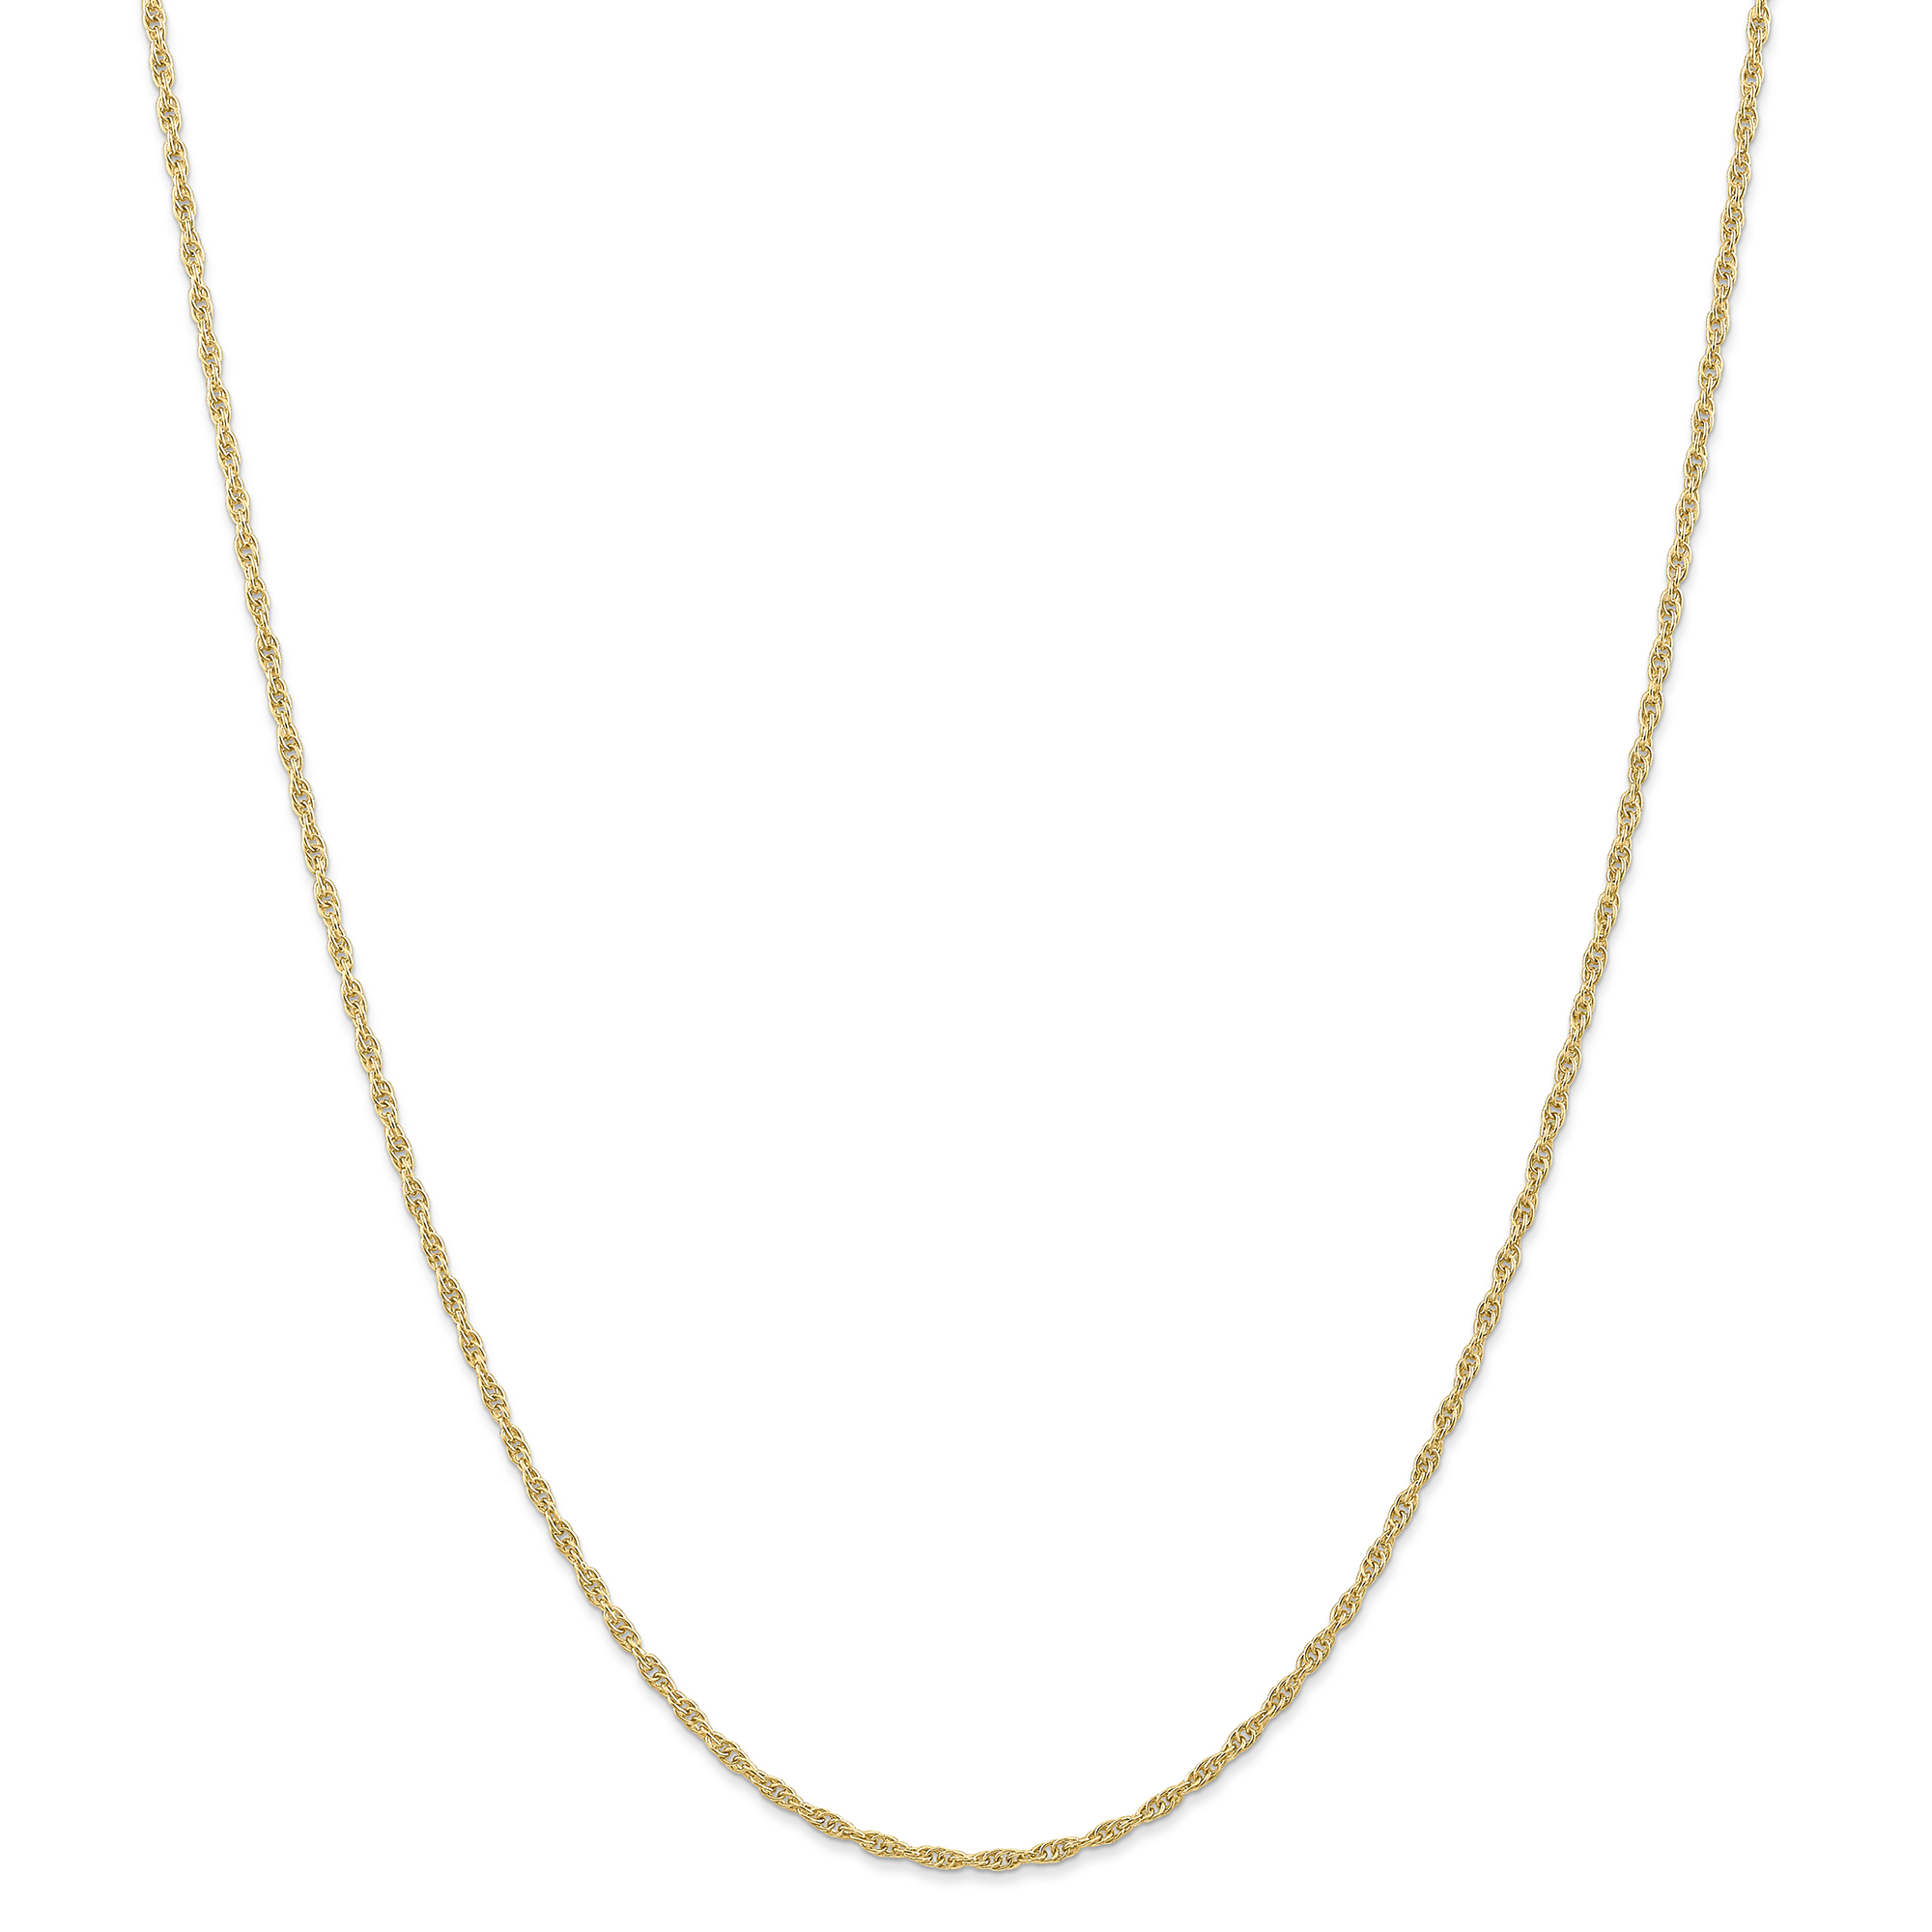 Roy Rose Jewelry 14K Yellow Gold 1.55mm Carded Cable Rope Chain Necklace ~ Length 18'' inches